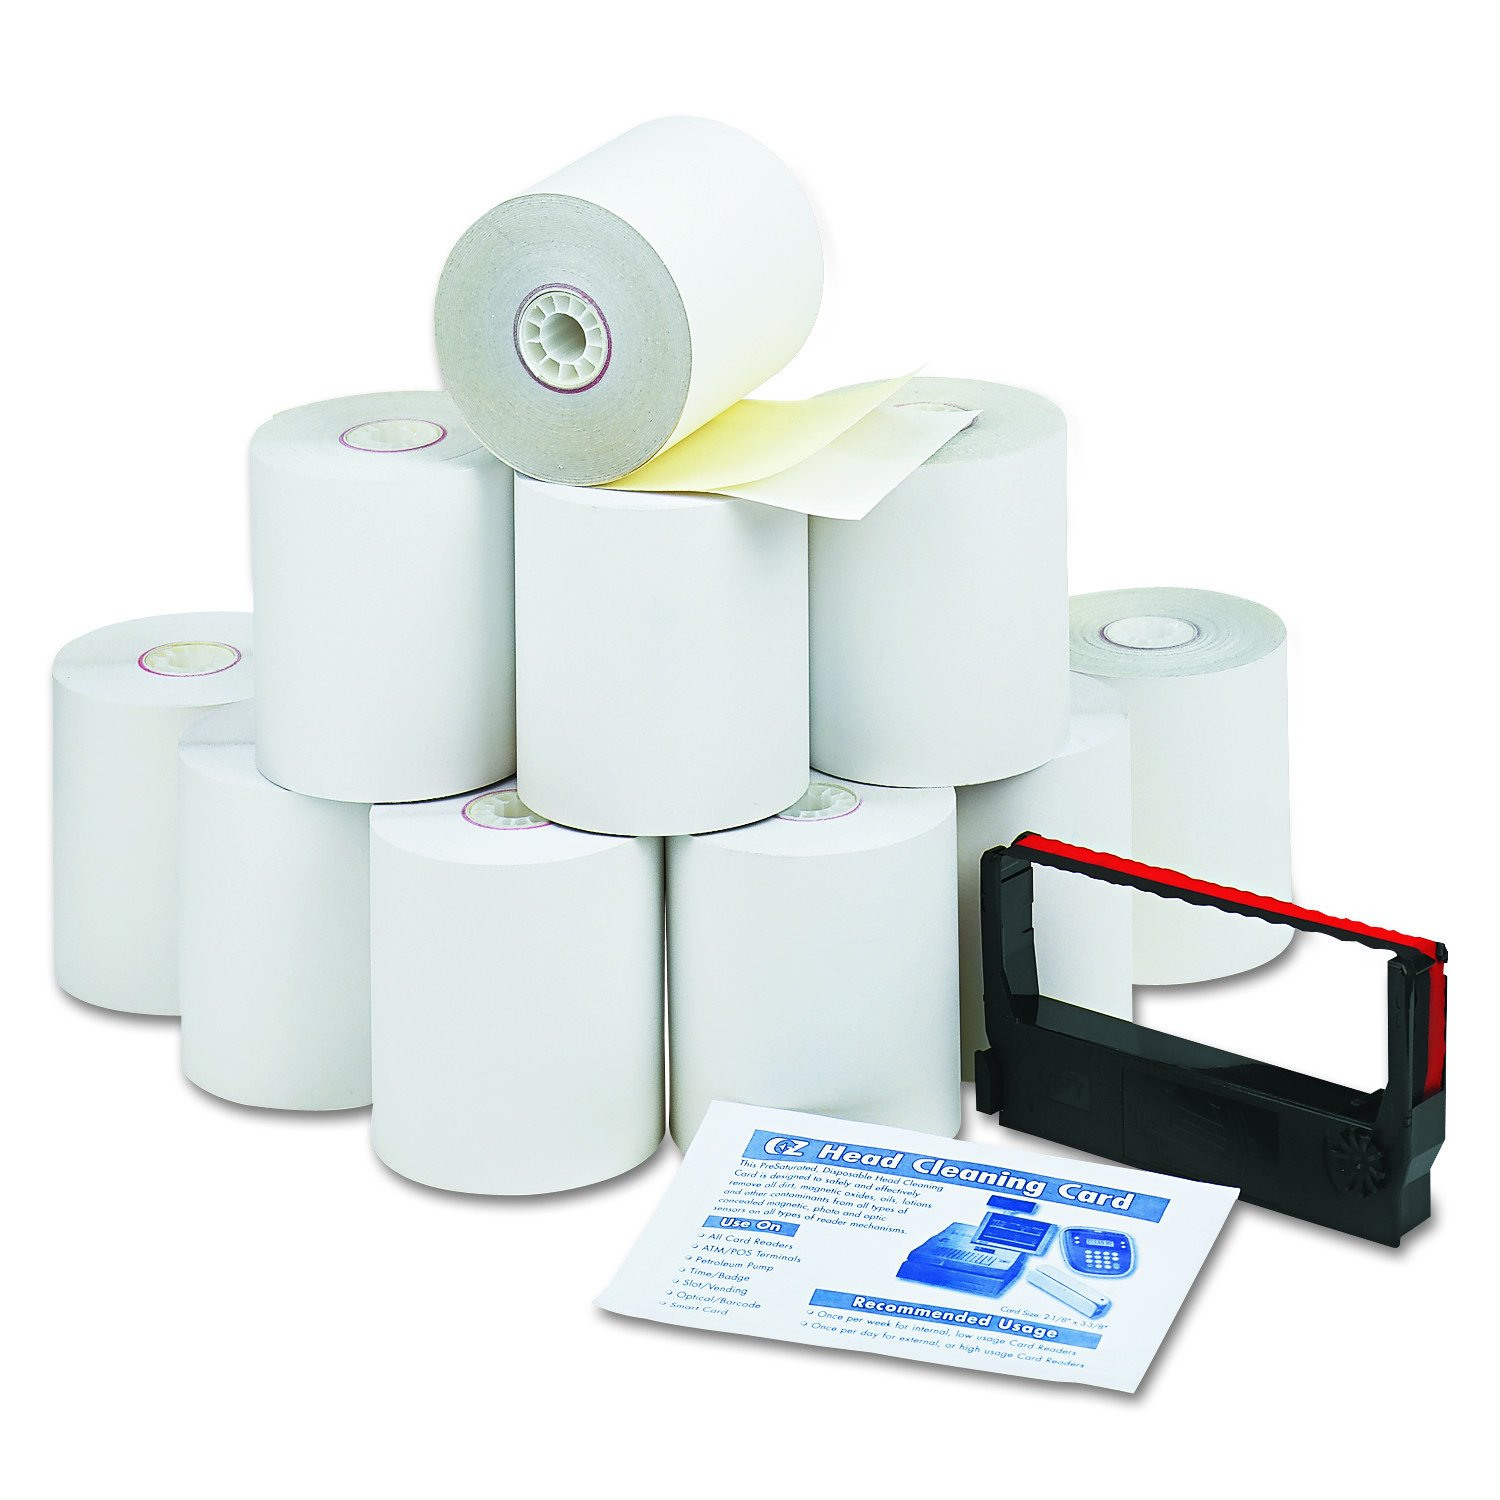 PM Company Perfection Credit/Debit Verification Roll Kit for Verifone 250 Printer, 1 Ribbon and Cleaning Card, White/Canary Rolls per Carton (09300)